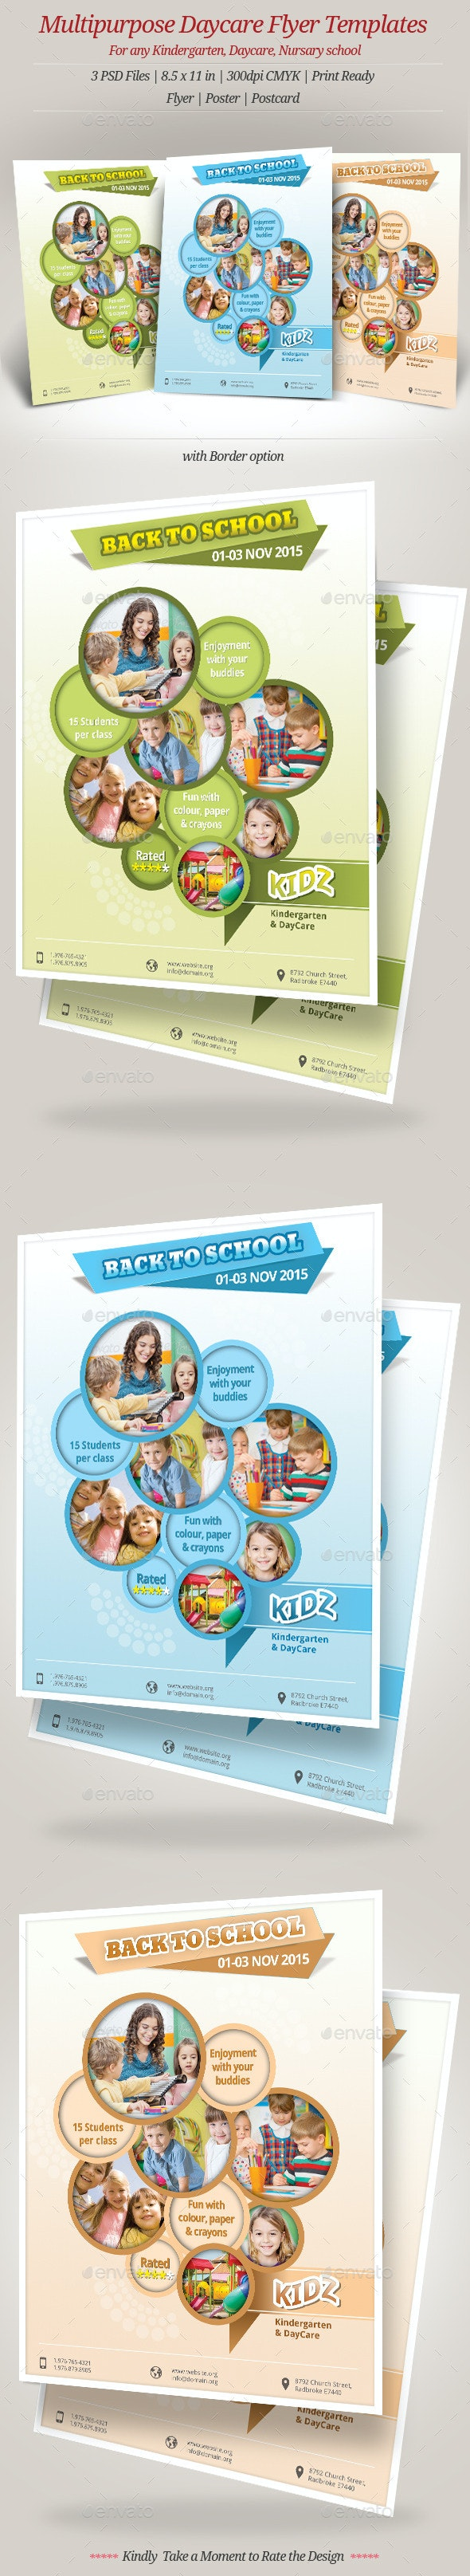 Multipurpose Daycare Flyer Templates - Events Flyers